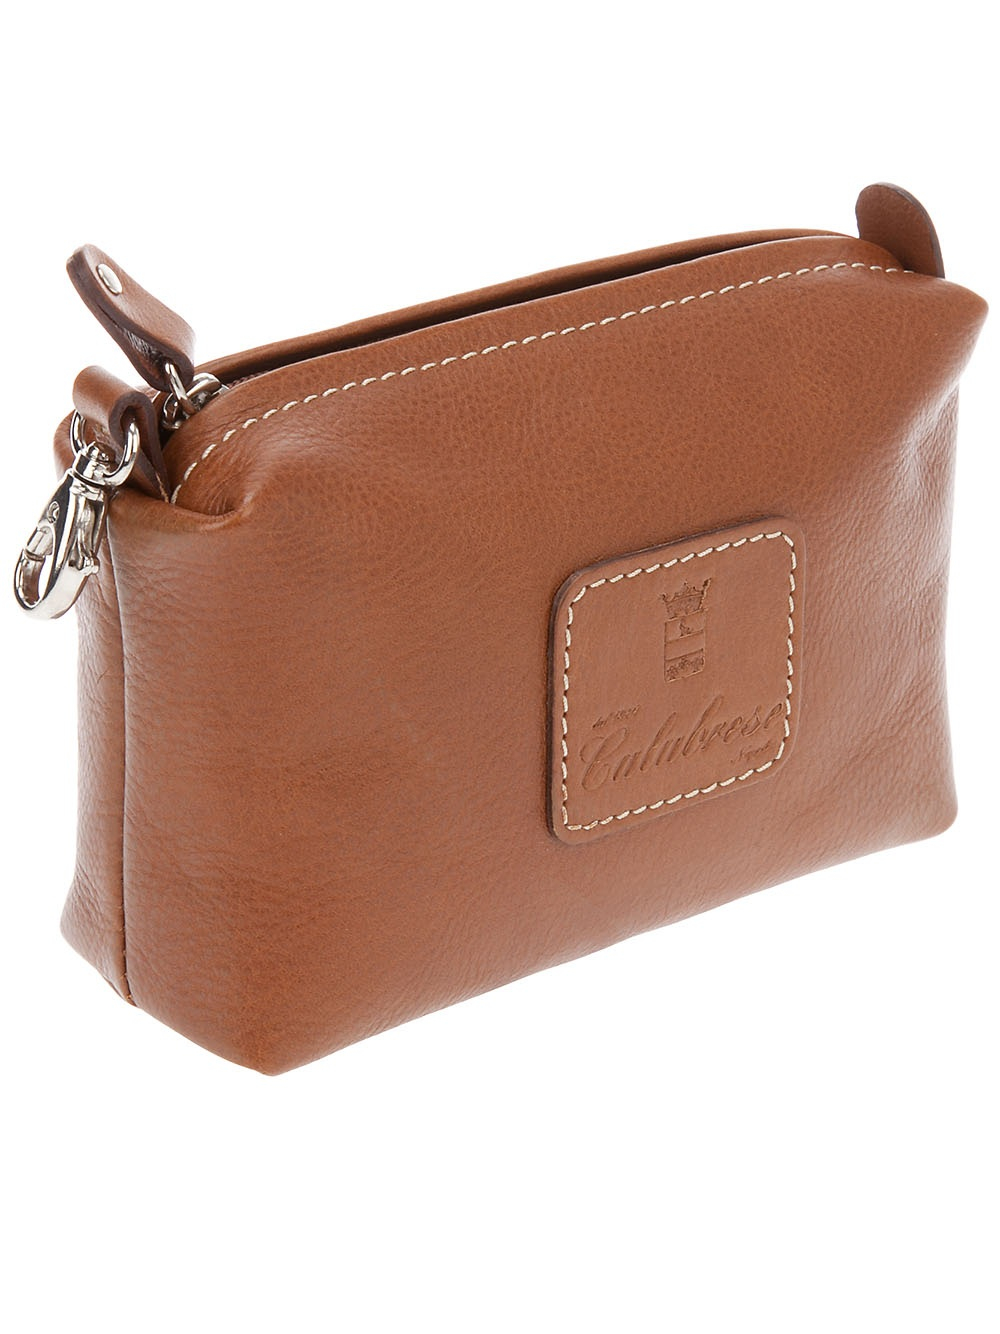 Calabrese bags Small Leather Wash Bag in Brown | Lyst